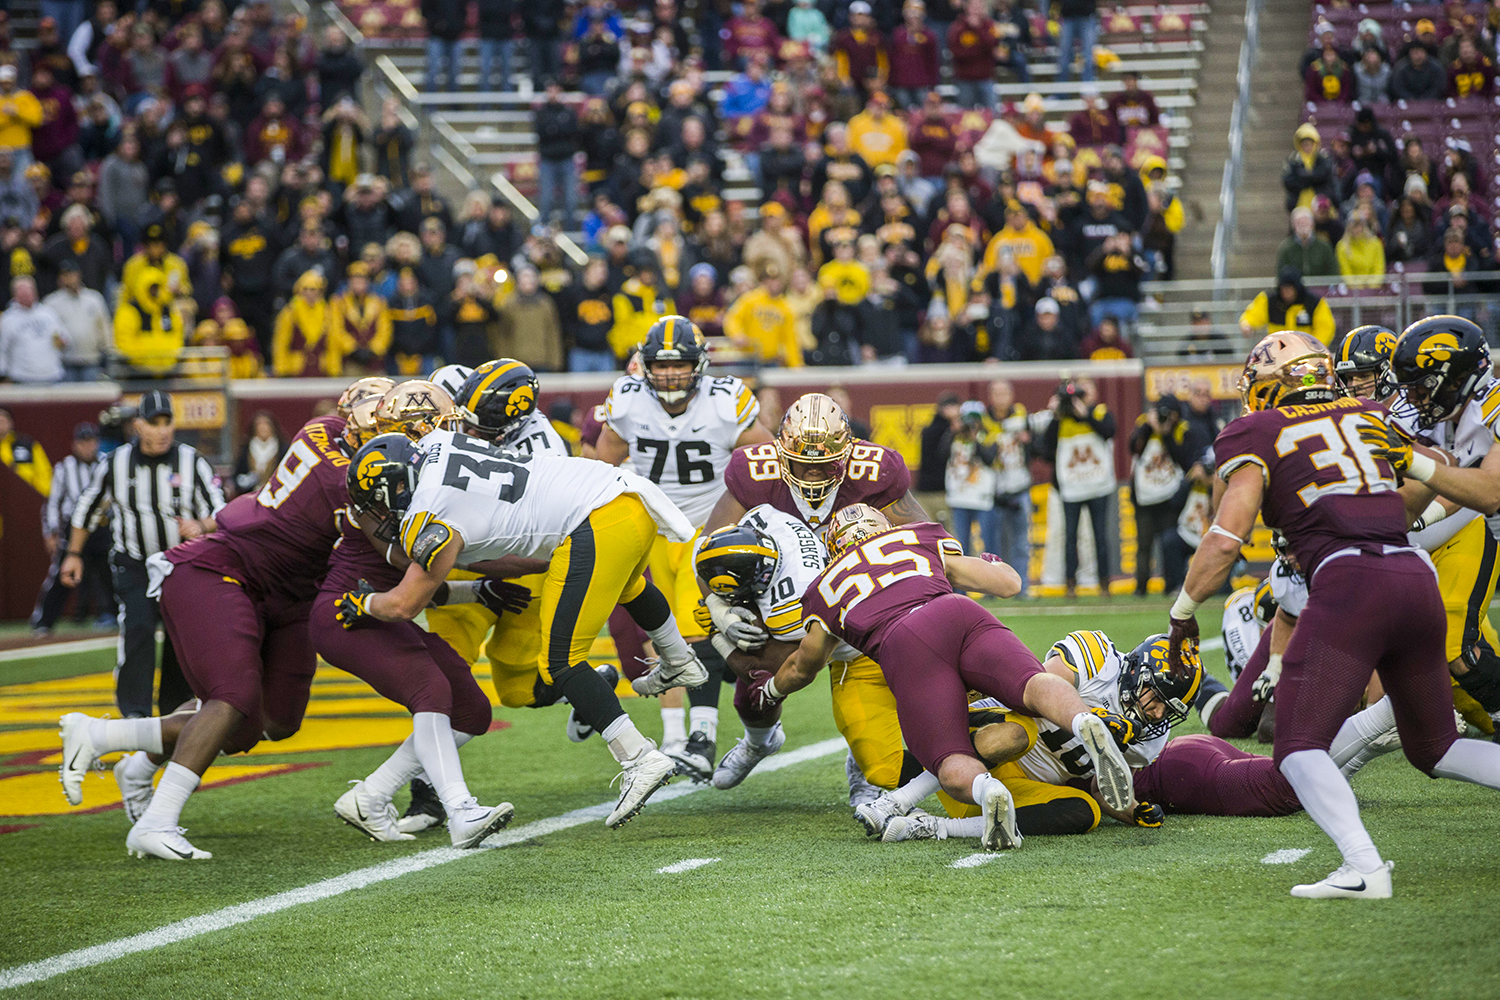 Iowa%27s+Mekhi+Sargent+during+the+Iowa%2FMinnesota+football+game+at+TCF+Bank+Stadium+in+Minneapolis+on+Saturday%2C+October+6%2C+2018.+The+Hawkeyes+defeated+the+Golden+Gophers%2C+48-31.